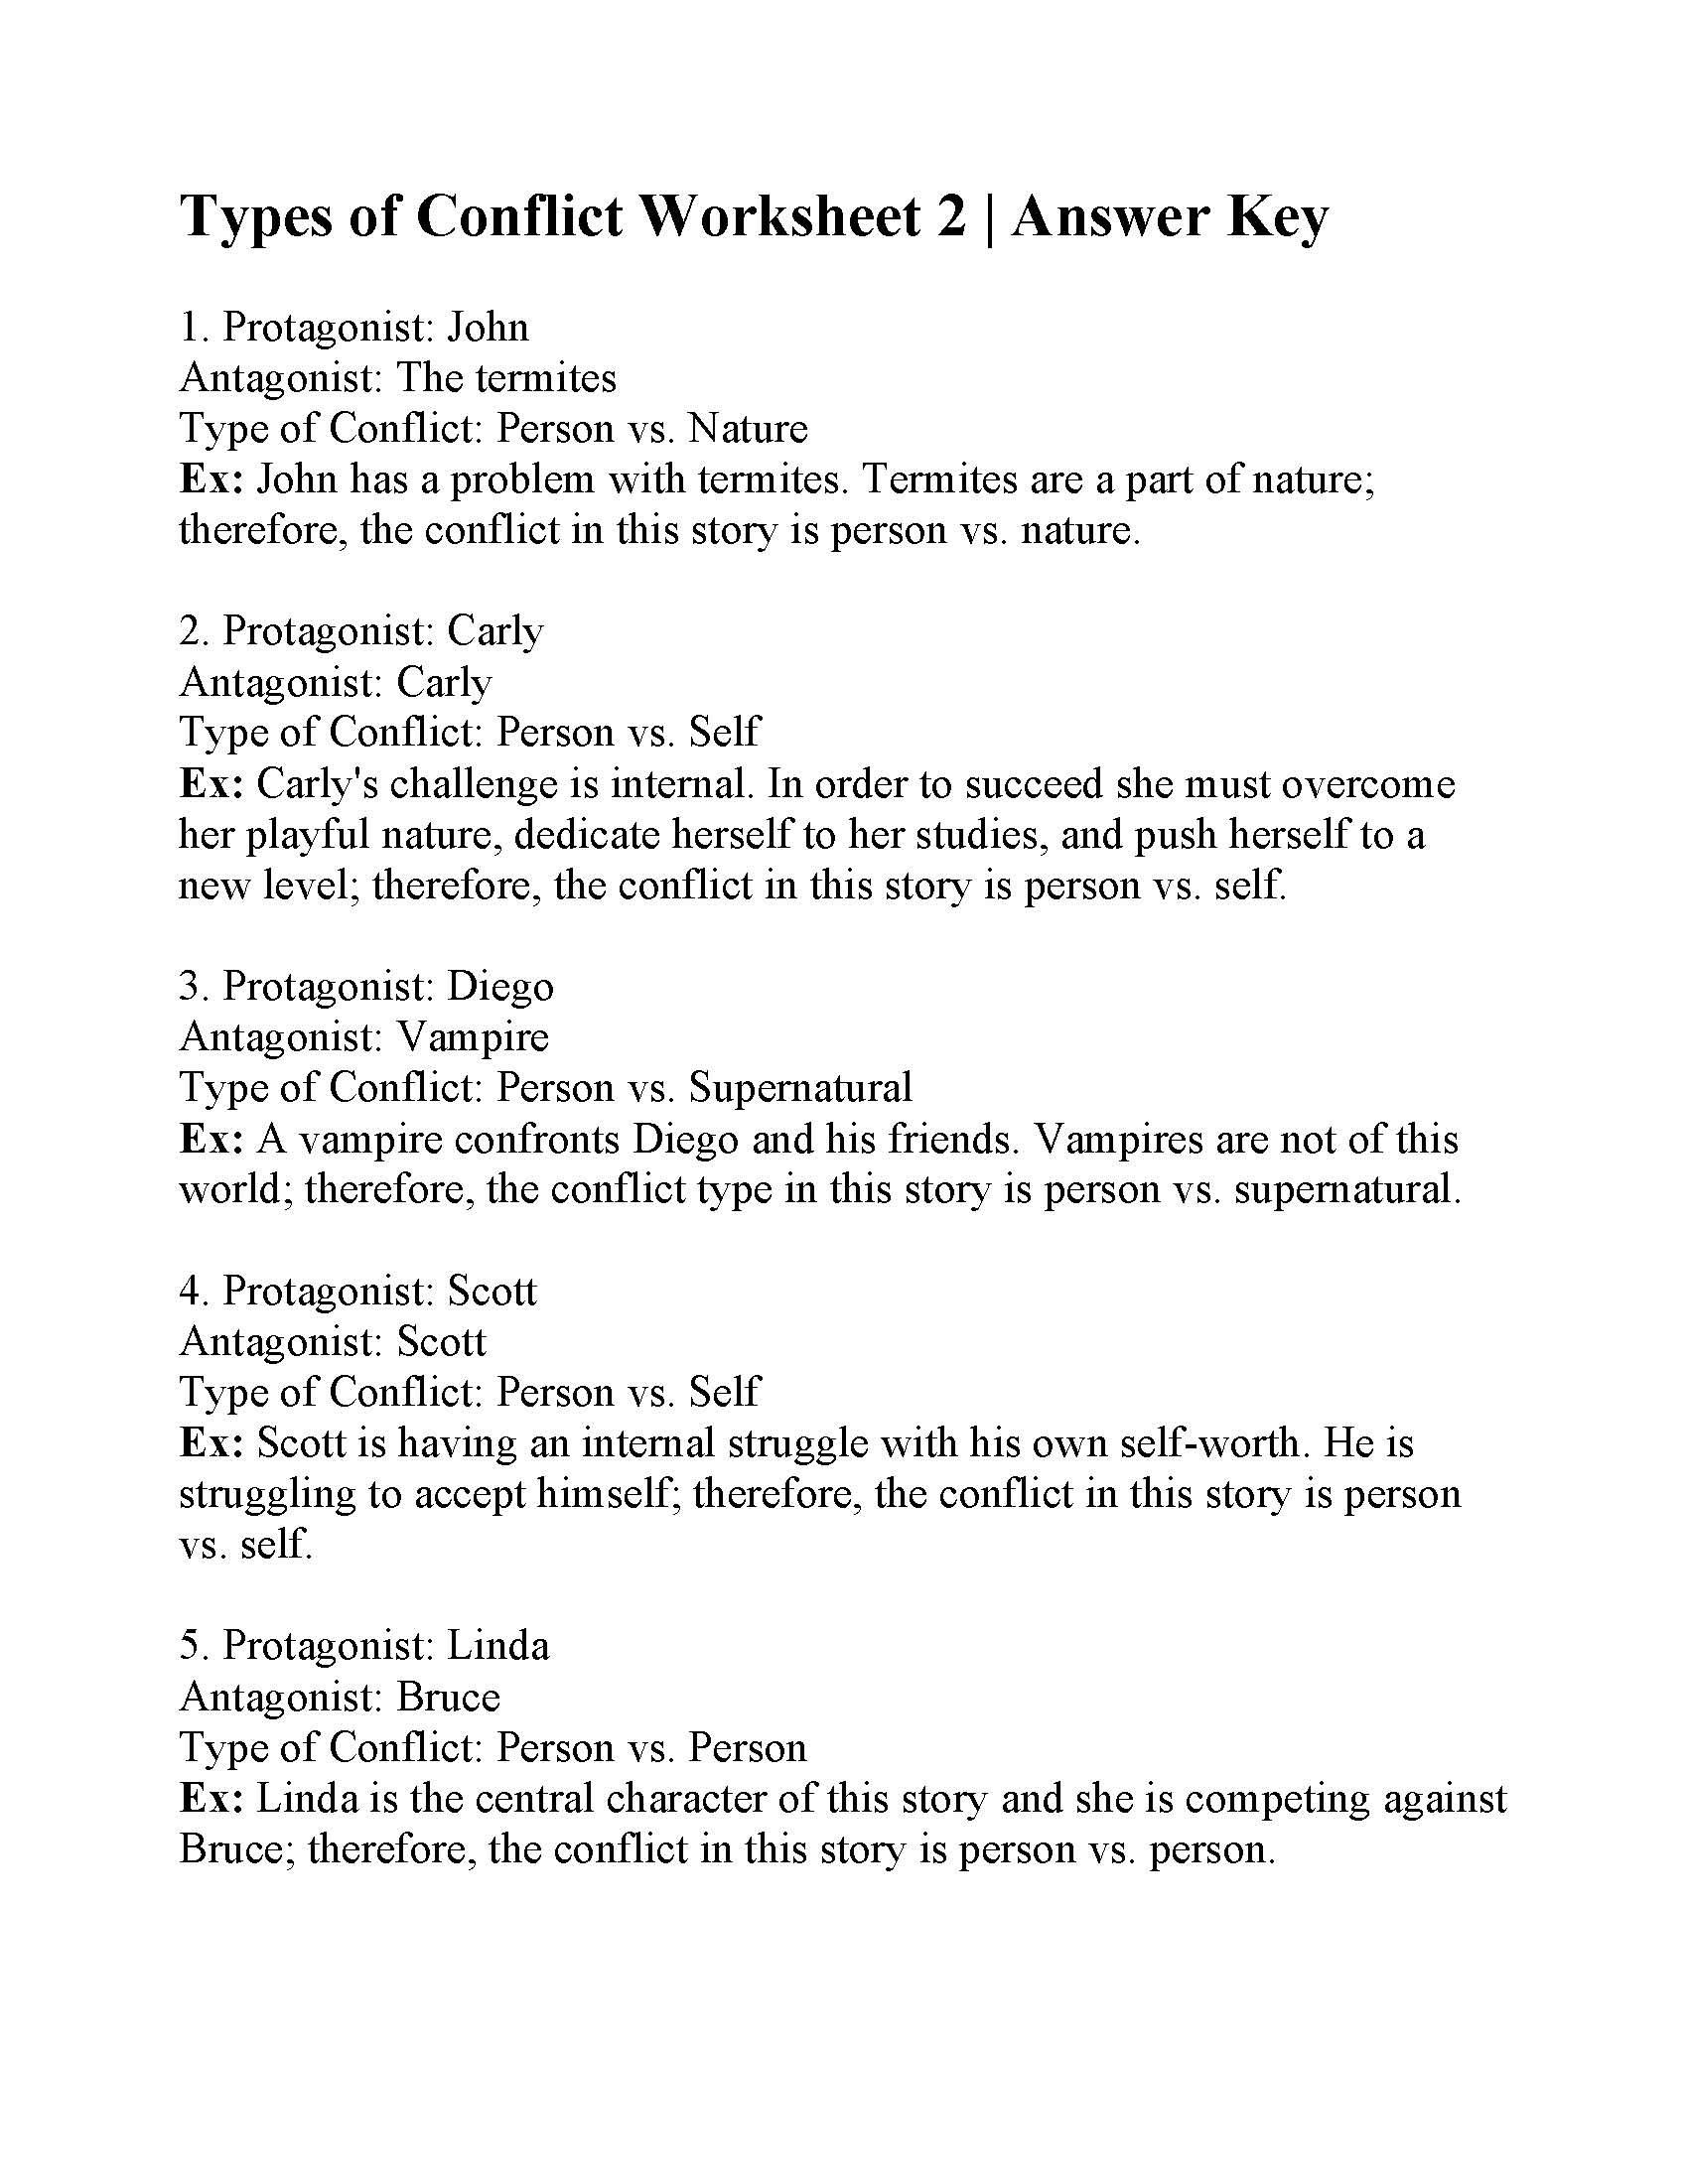 Conflict Worksheets for Middle School This is the Answer Key for the Types Of Conflict Worksheet 2